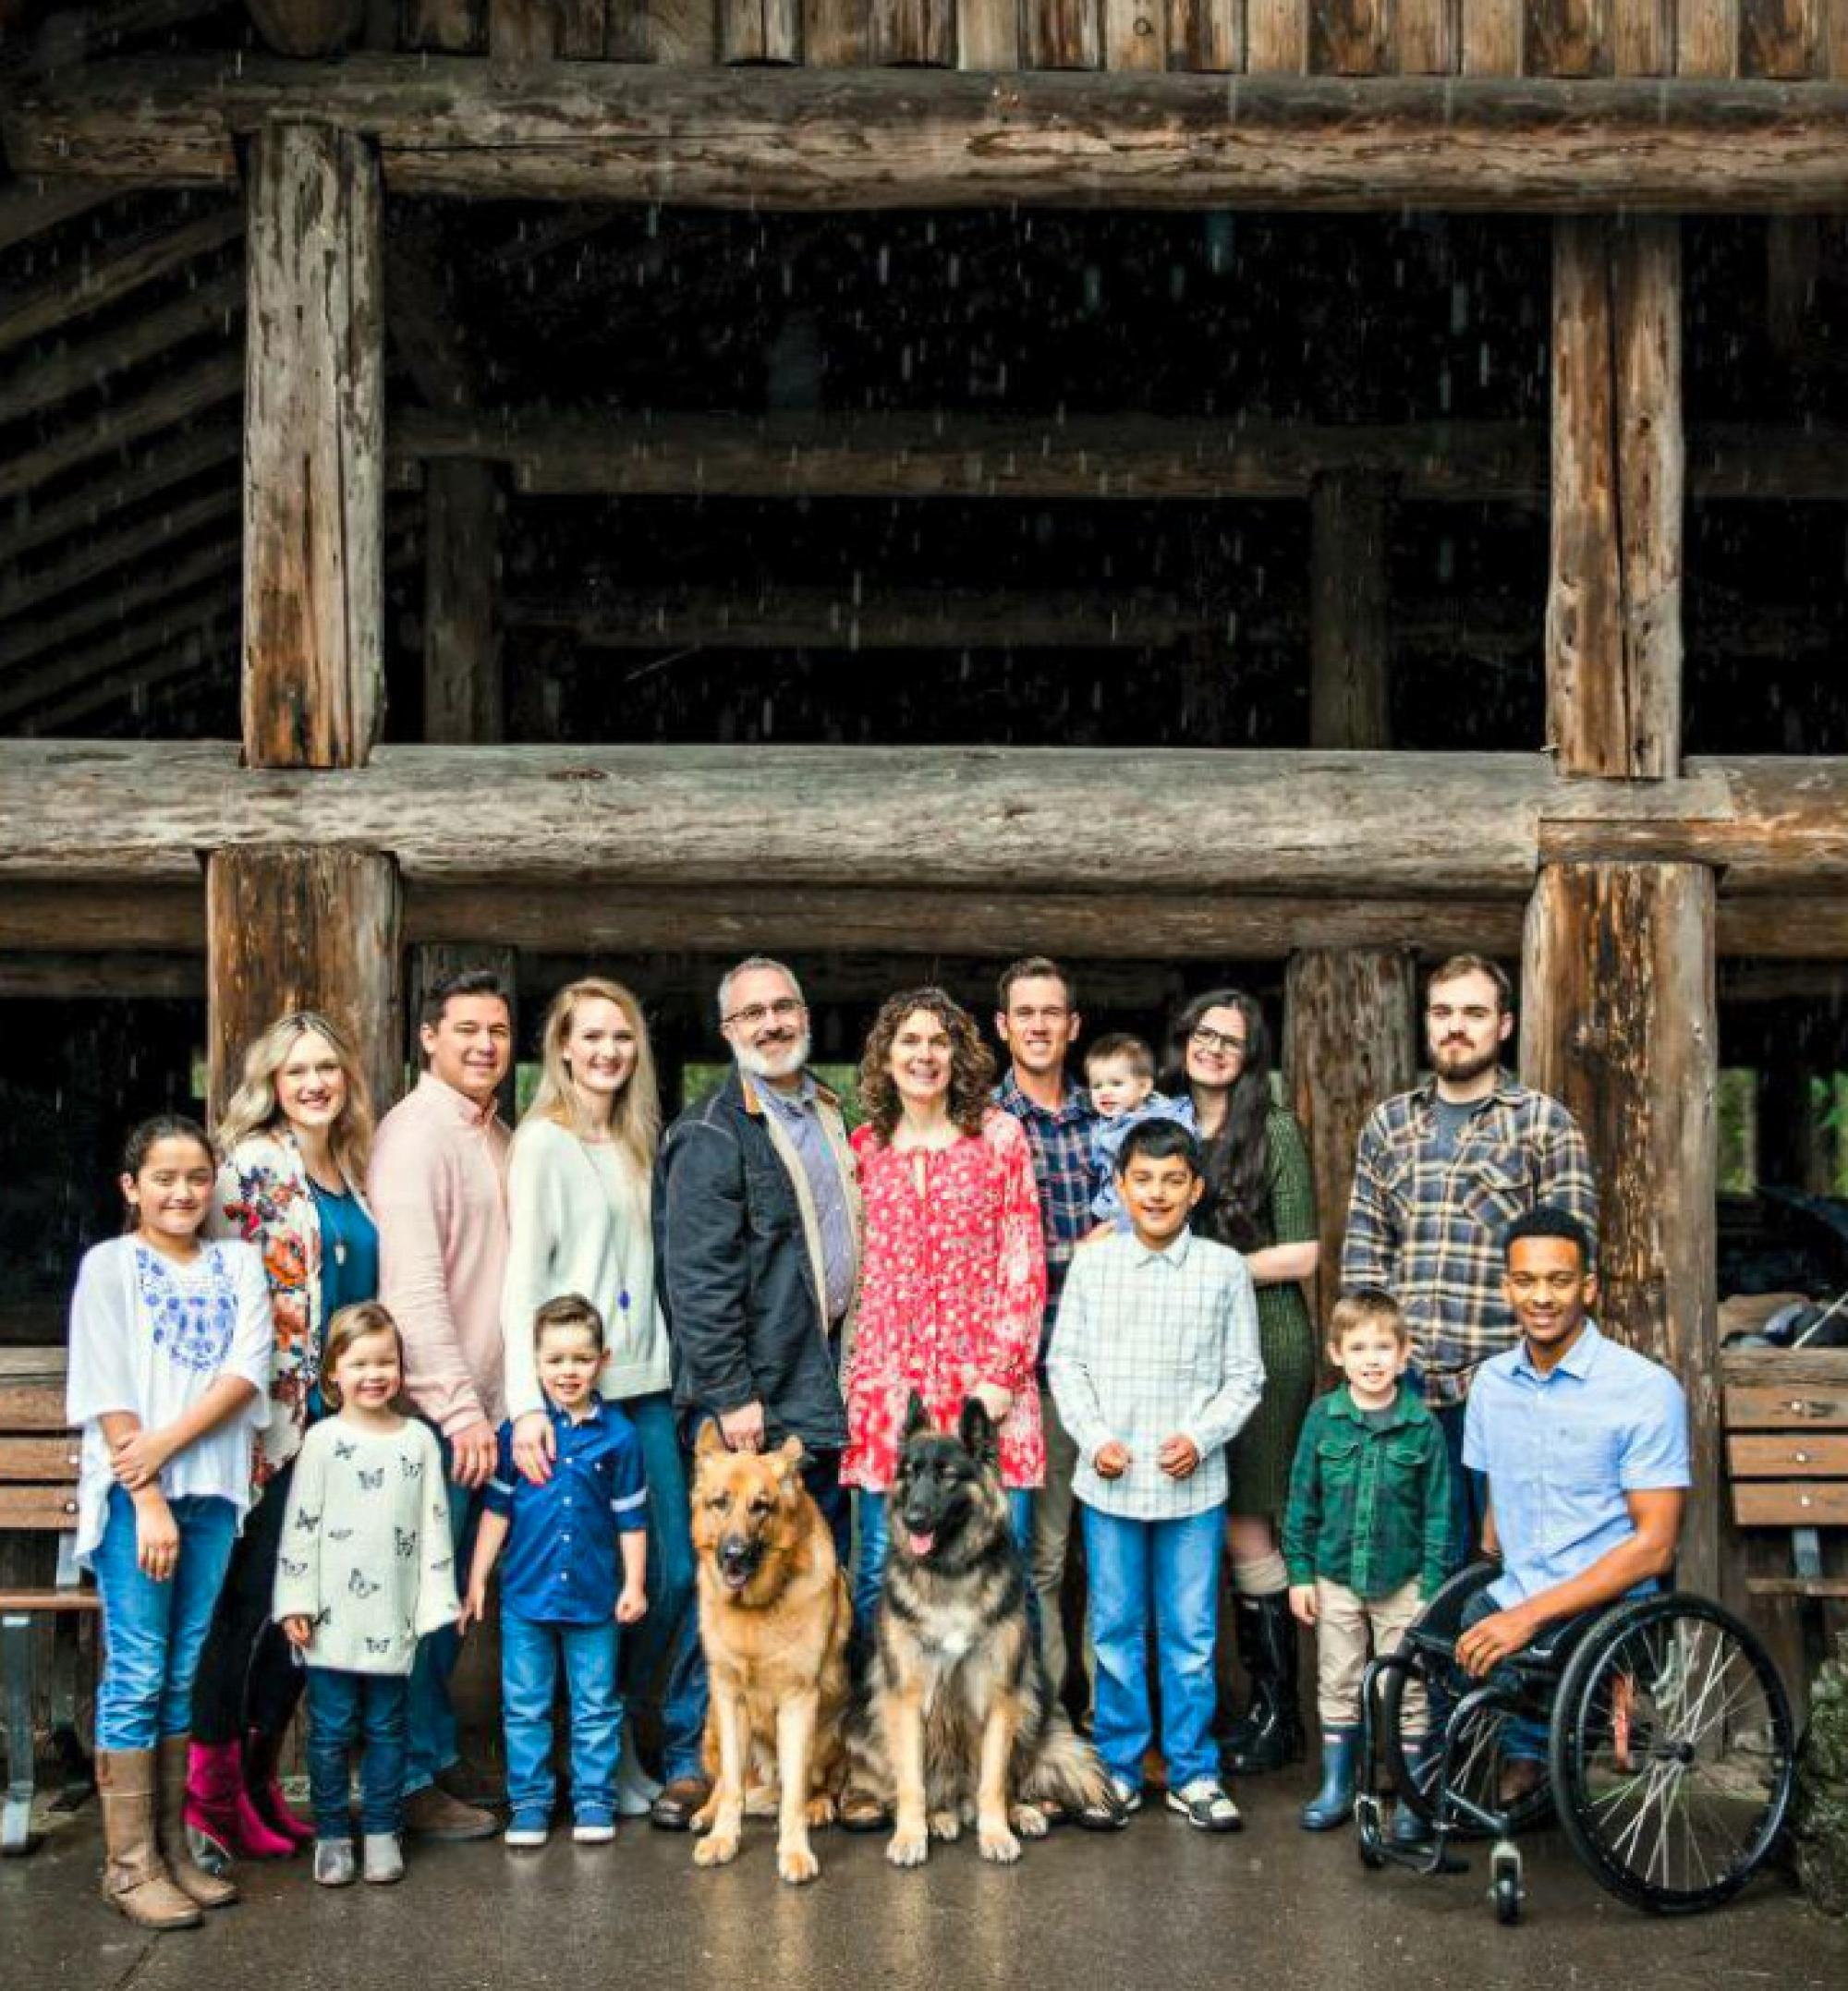 Brewer with his parents, siblings, nieces and nephews.